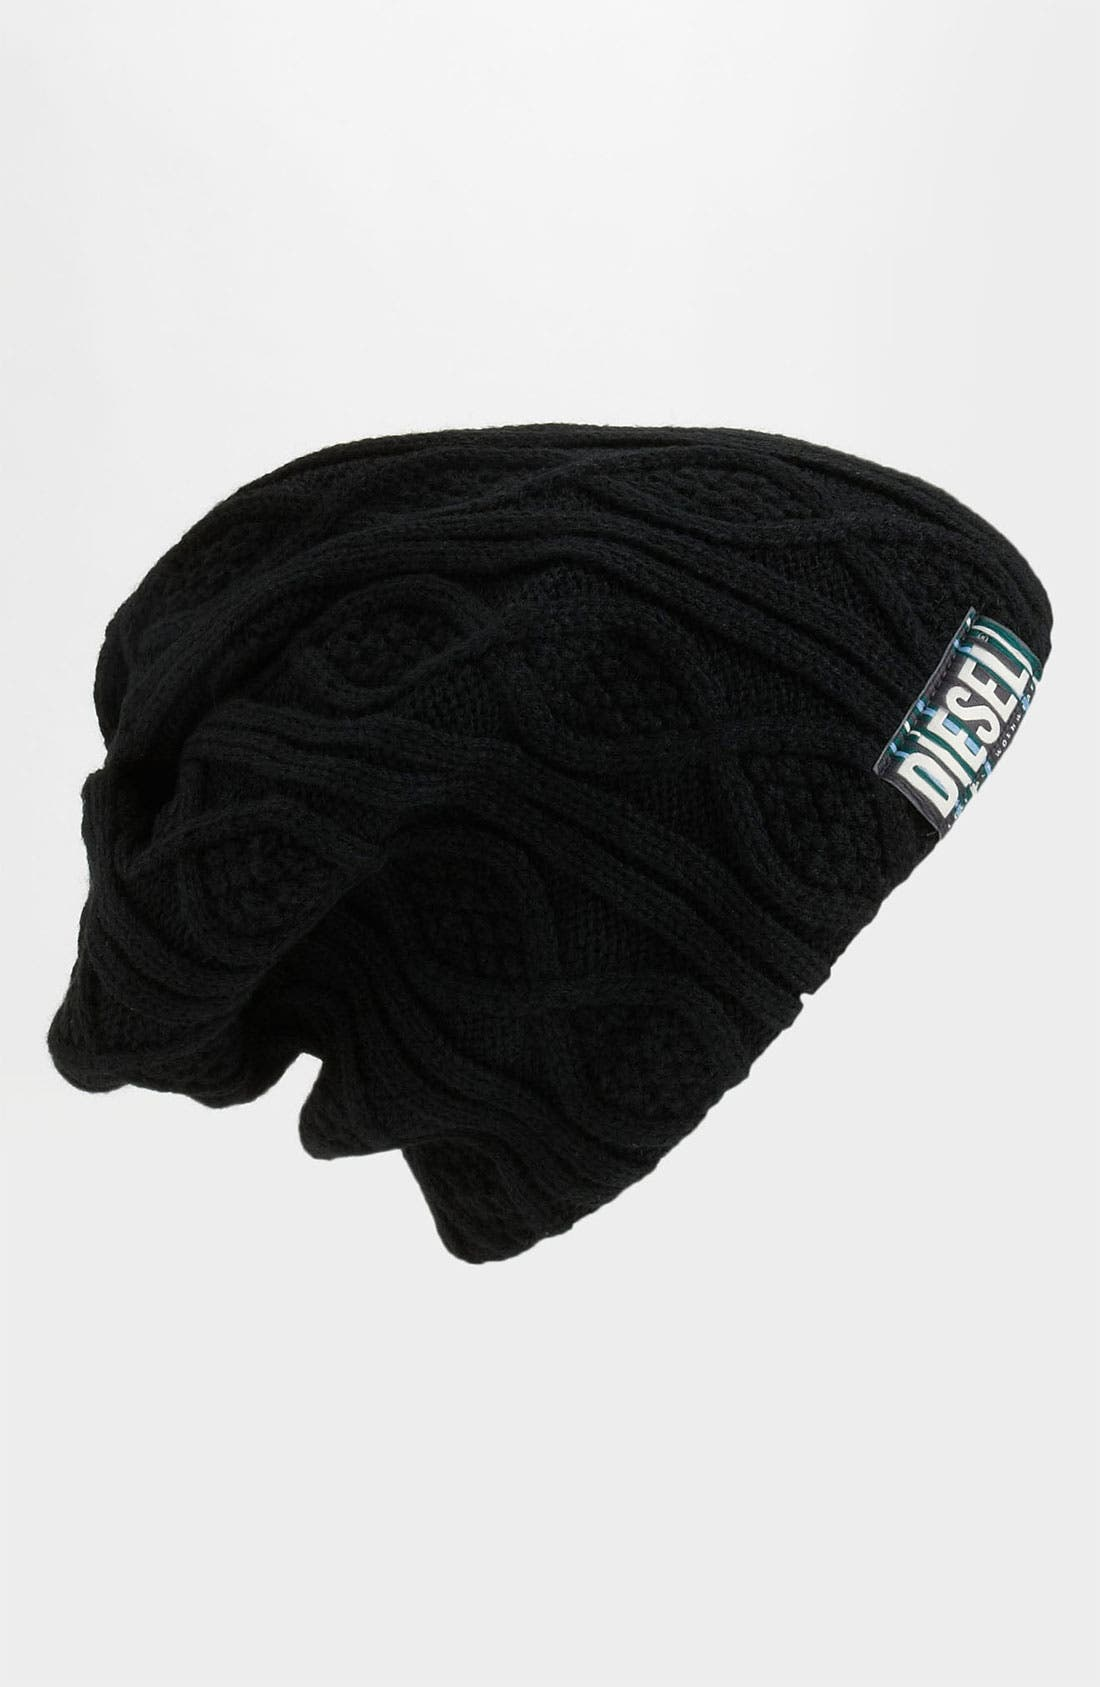 Alternate Image 1 Selected - DIESEL® 'Krissyet' Cable Knit Cap